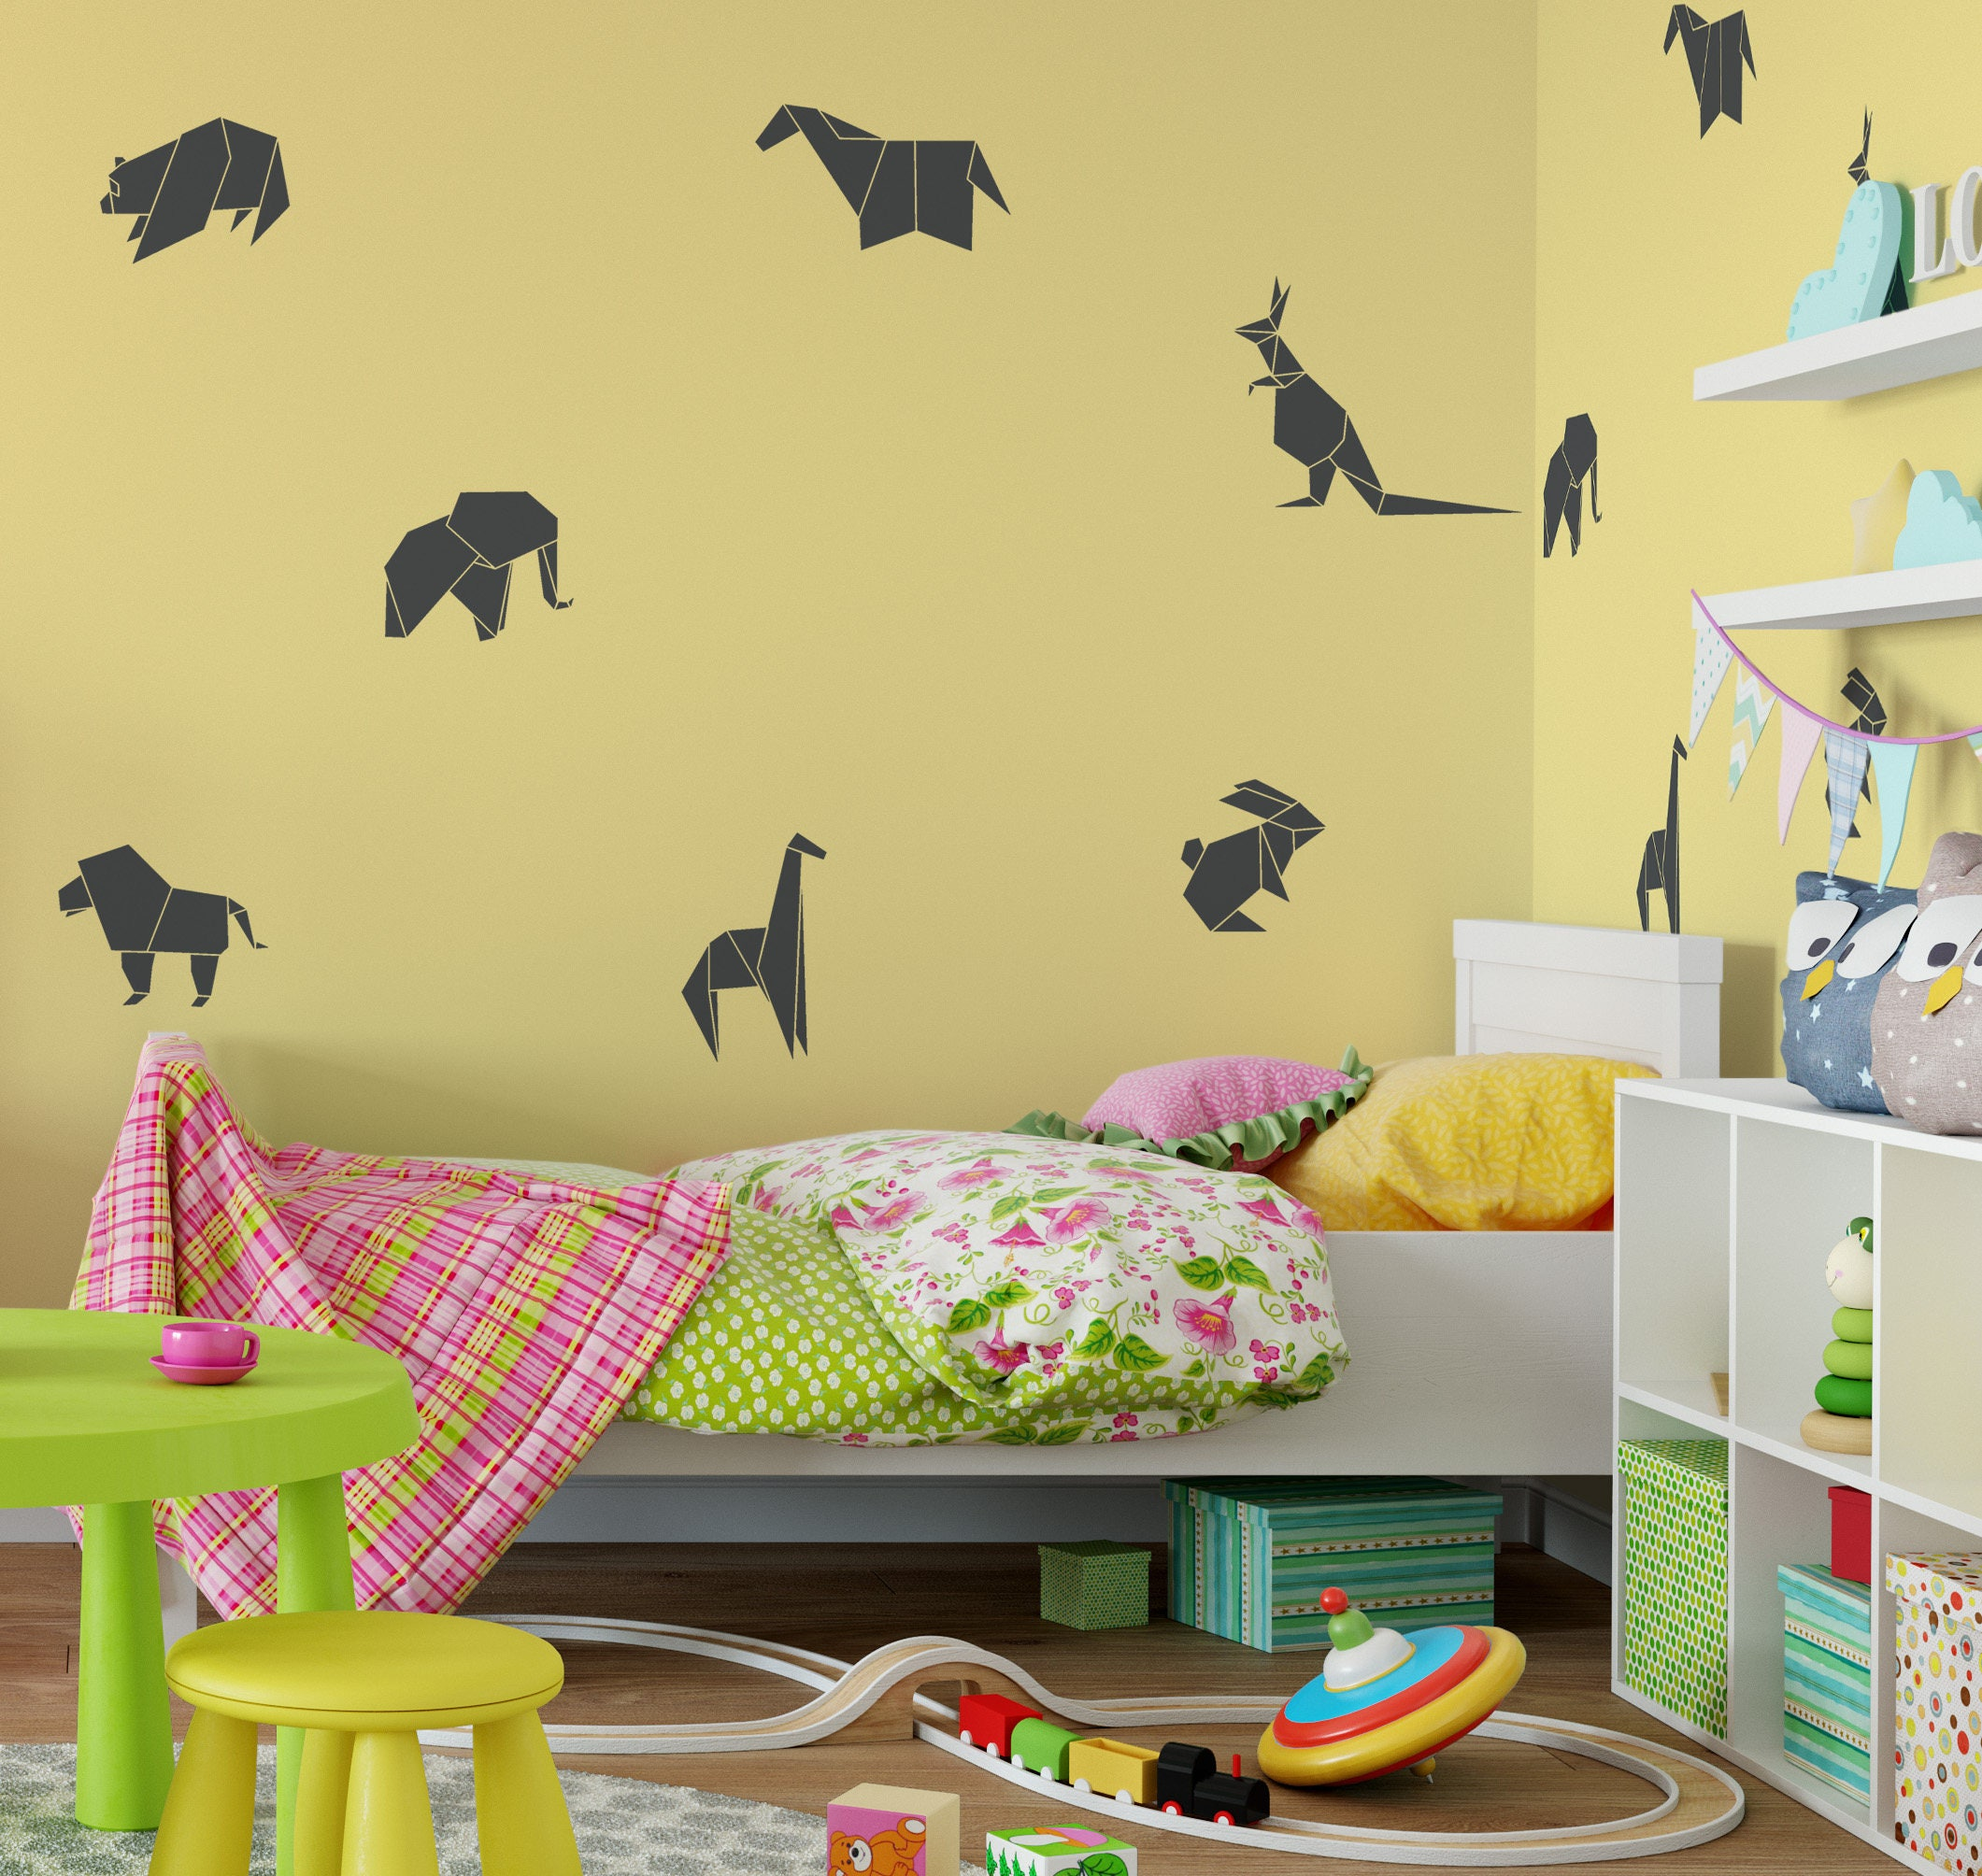 Origami Animal Wall Decal - Paper Animal Art, Paper Animal Decal ...